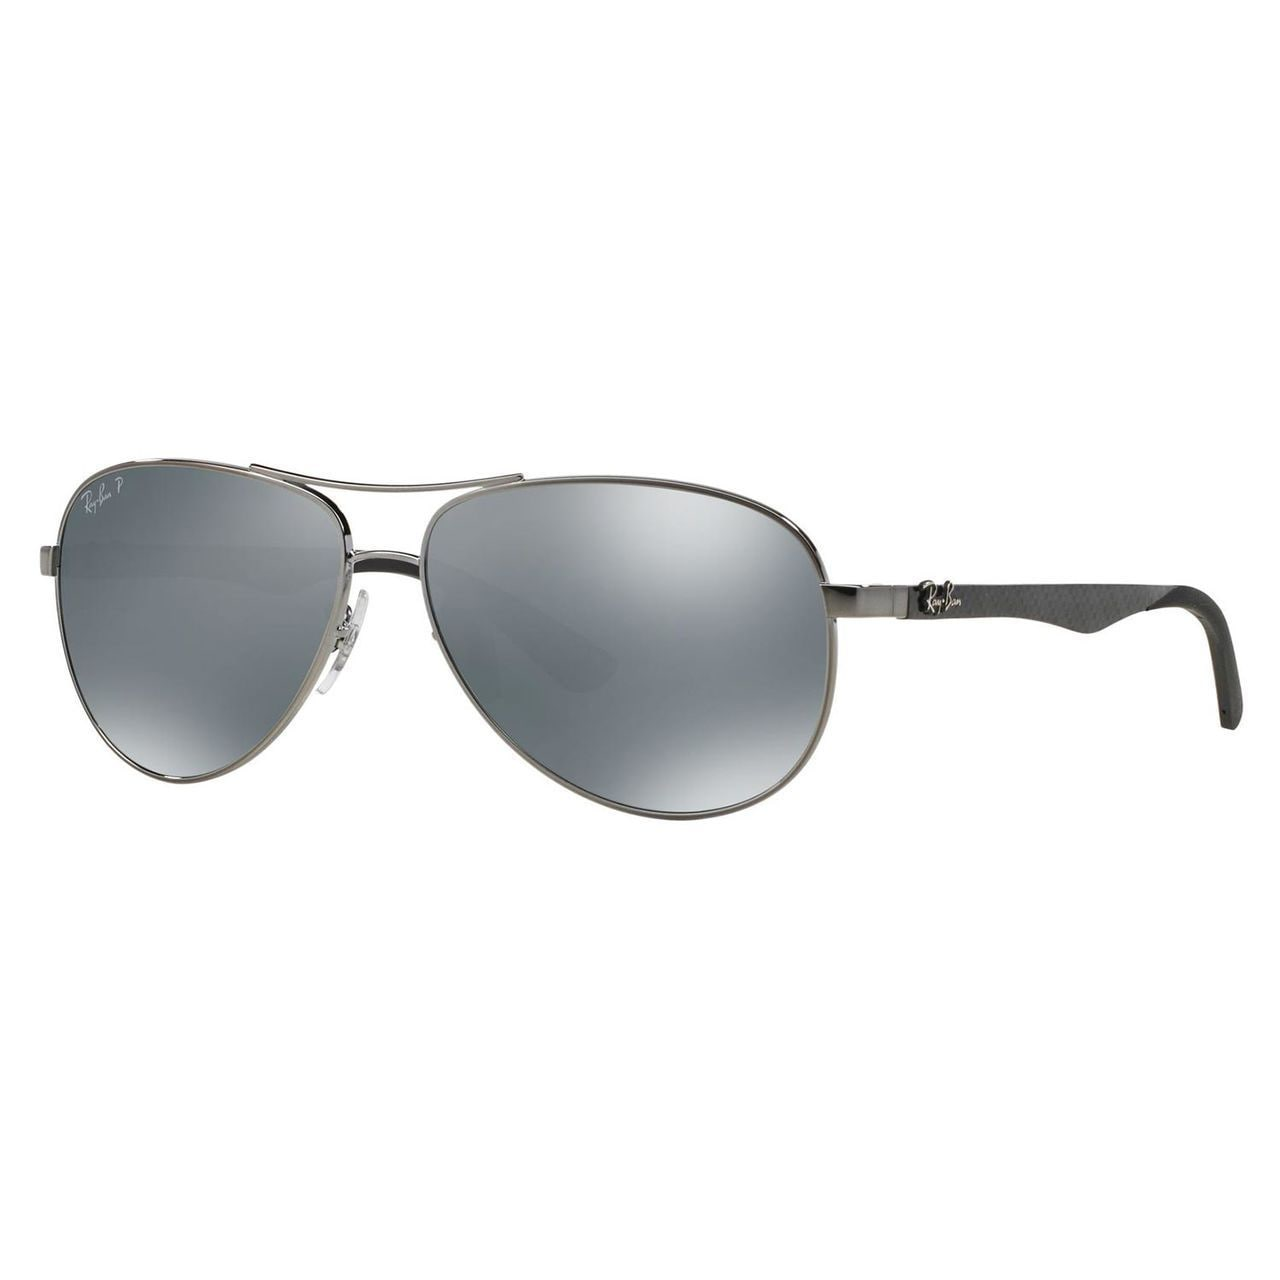 24d36610ec Shop Ray-Ban Men s RB8313 Gunmetal Metal Pilot Polarized Sunglasses - Free  Shipping Today - Overstock - 10481960